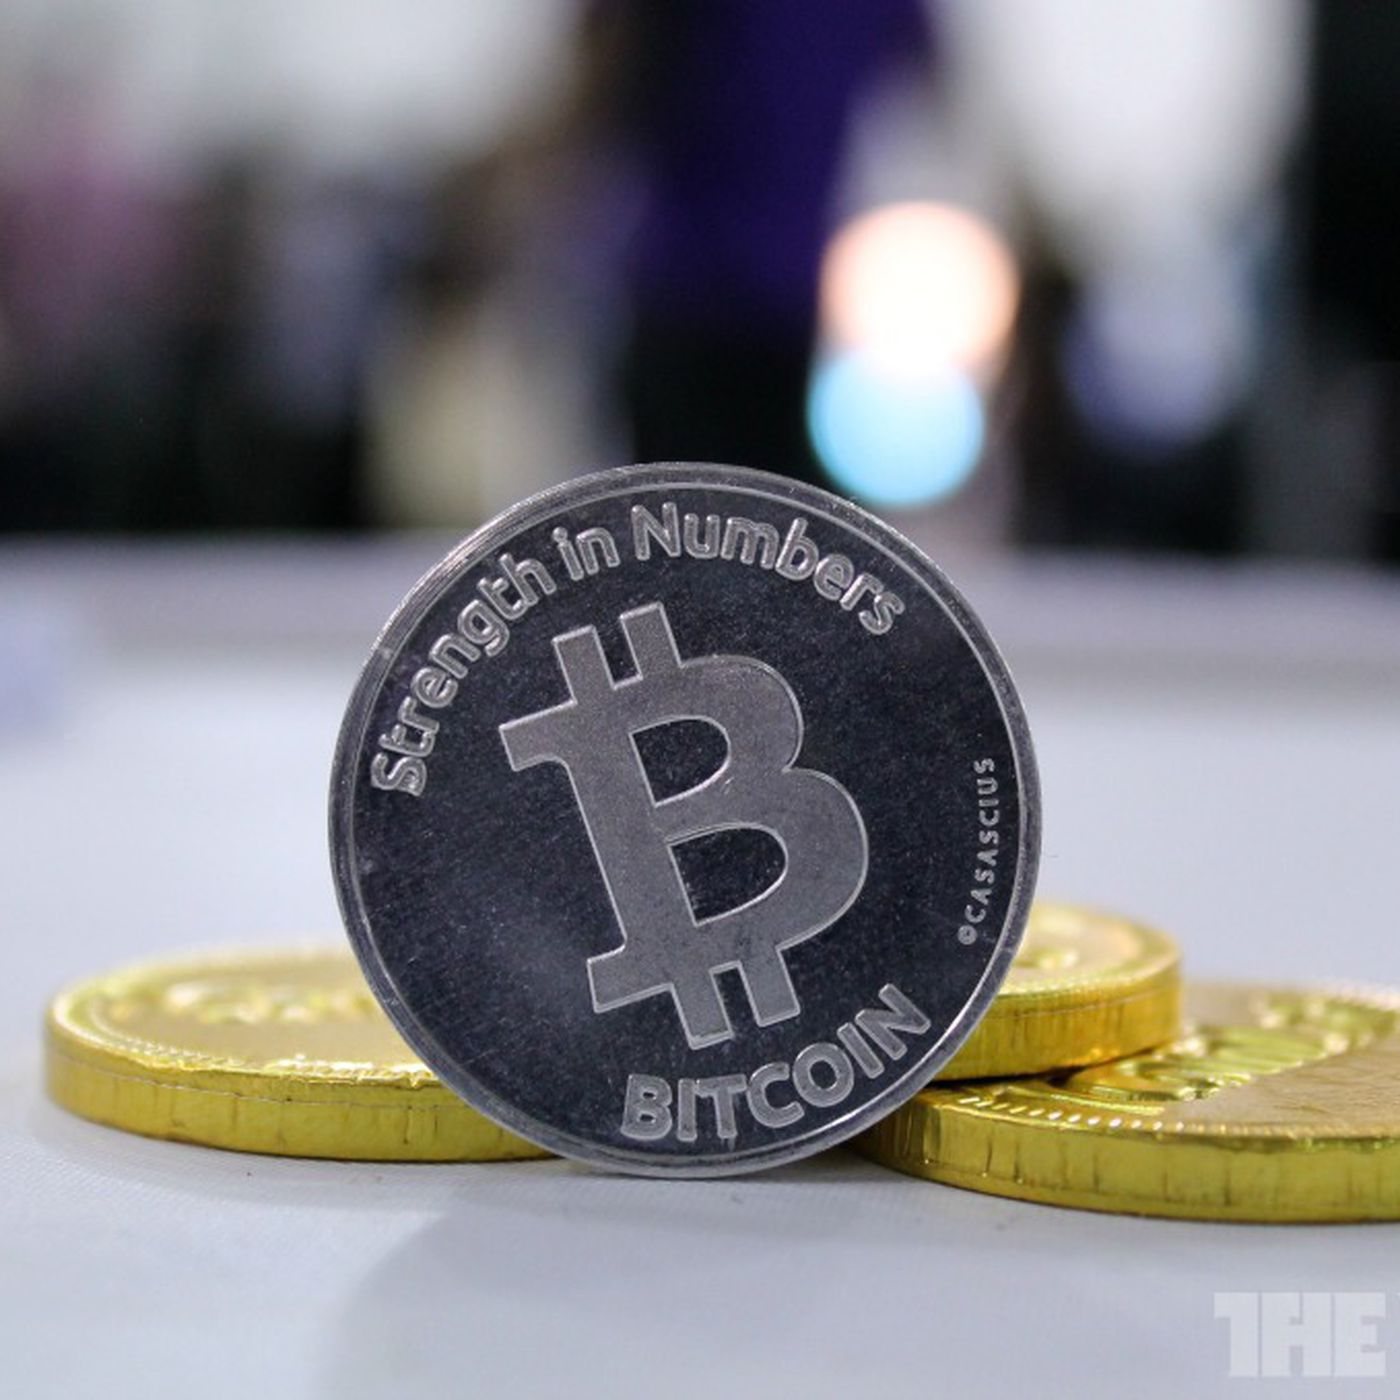 why bitcoin went down